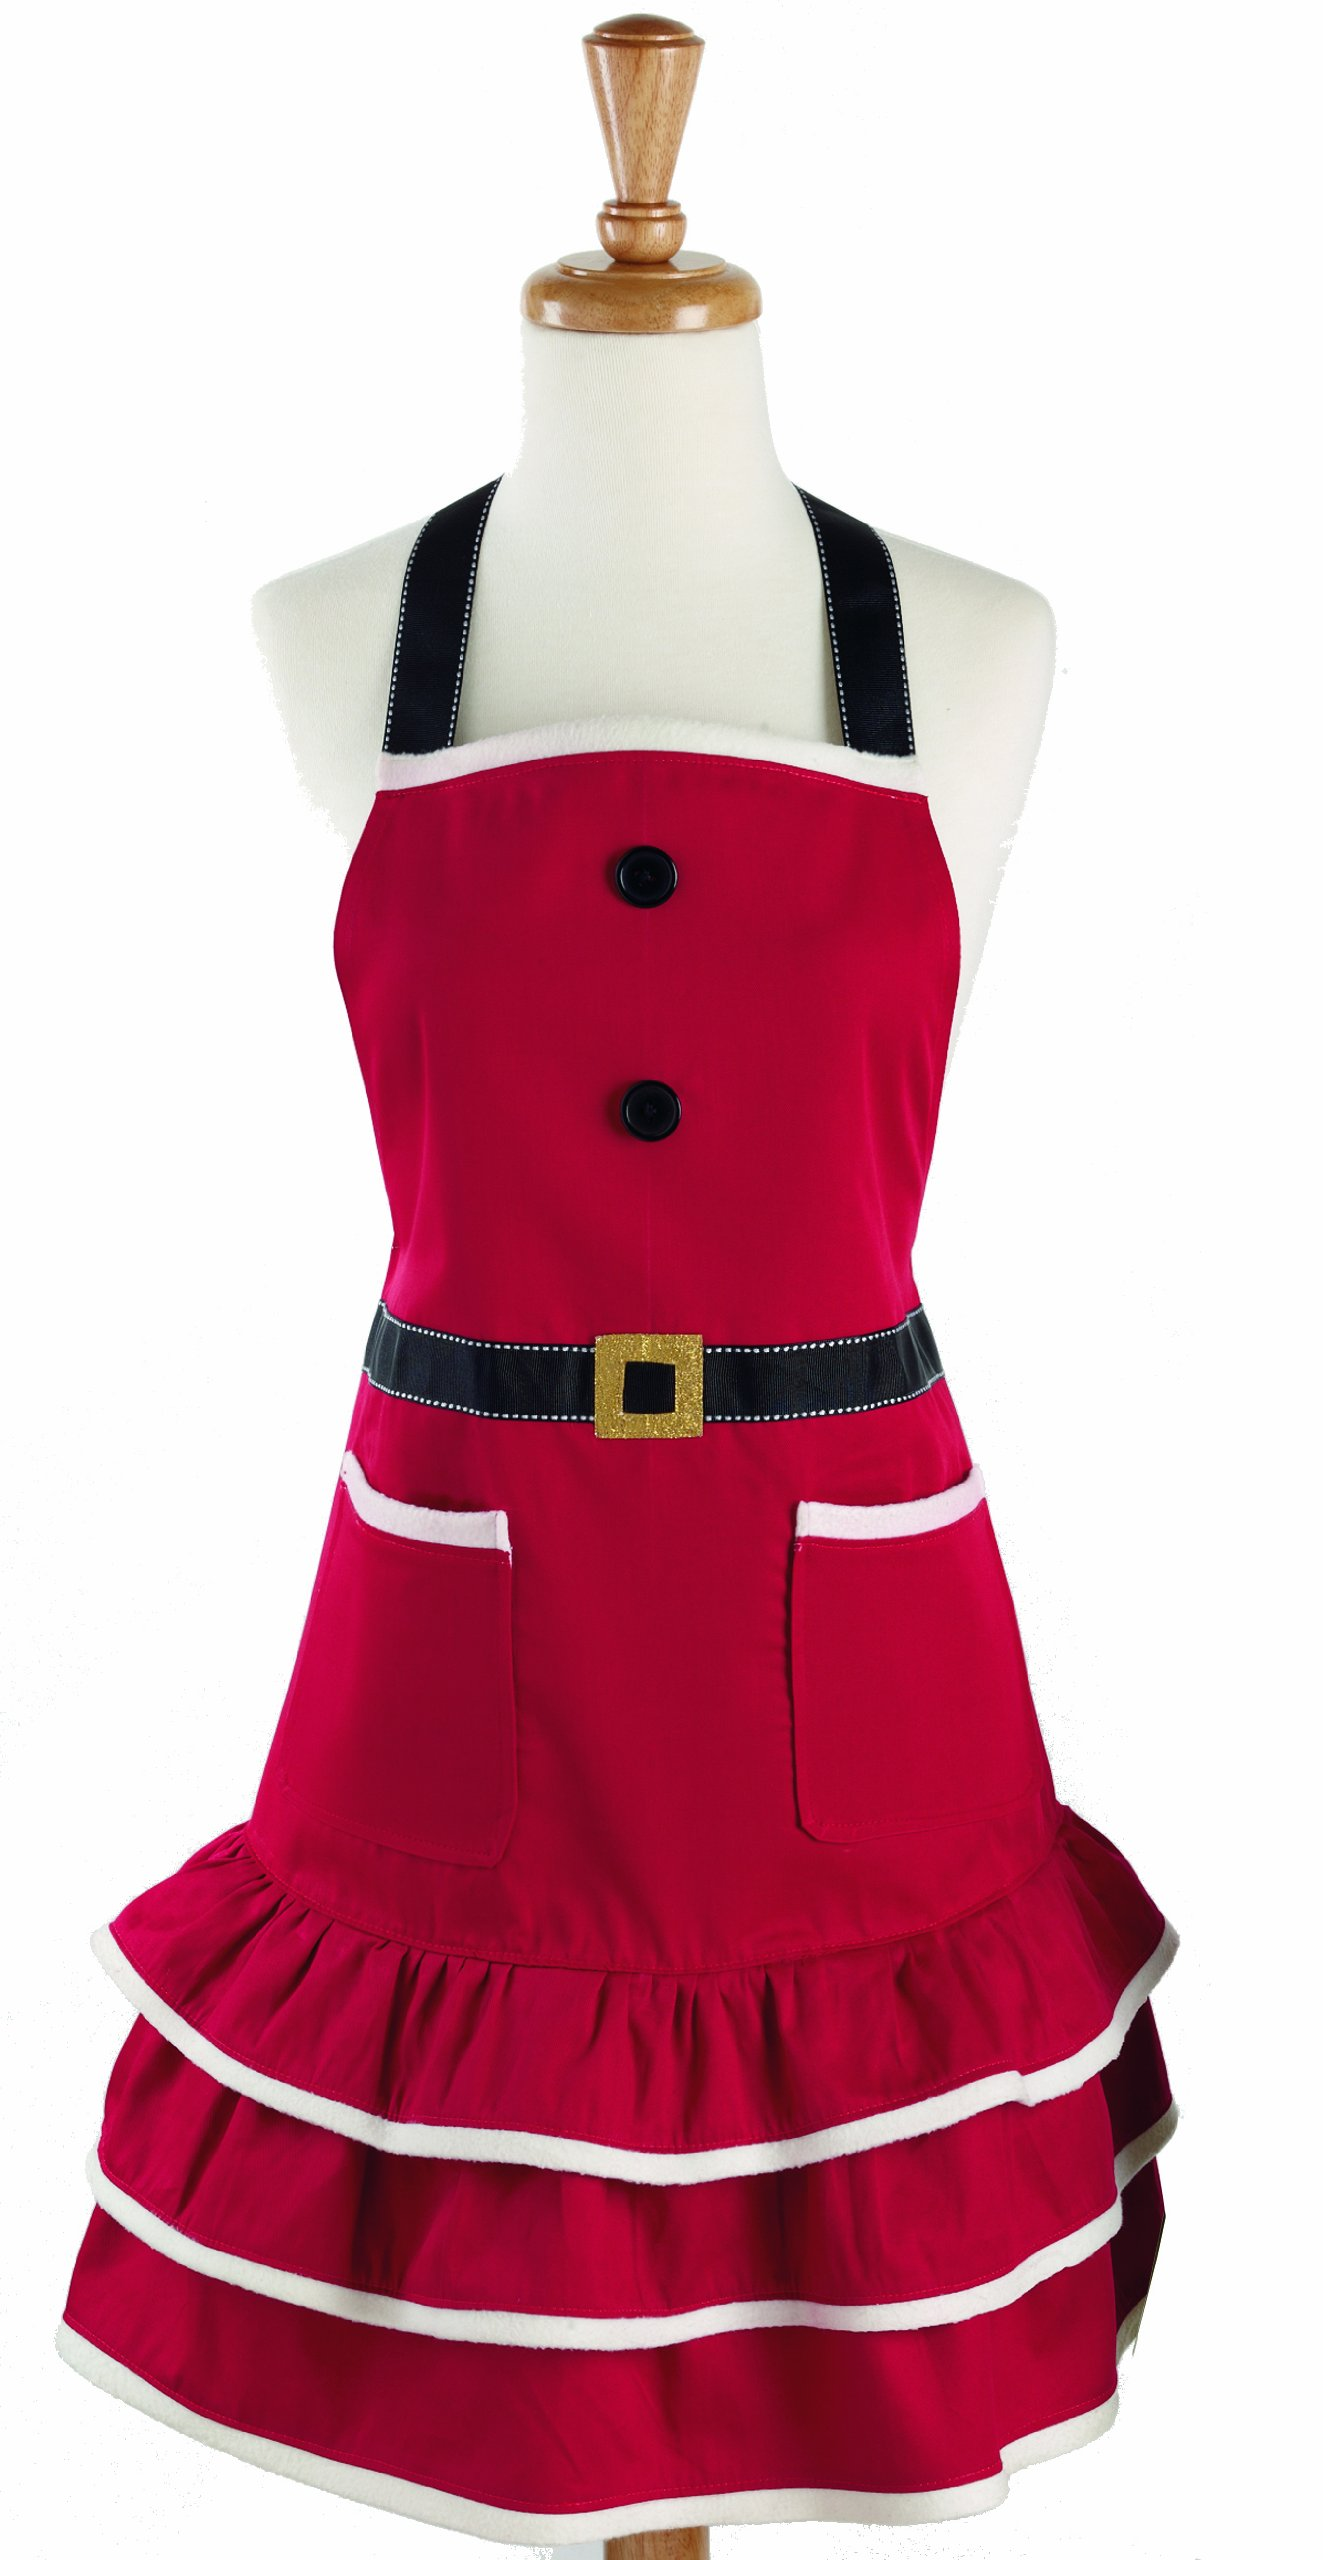 DII Cotton Chistmas Kitchen Apron with Pocket and Extra Long Ties, 29.5 x 24, Cute Women Ruffle Apron for Holidays, Hostee and Housewarming Gift-Mrs. Claus